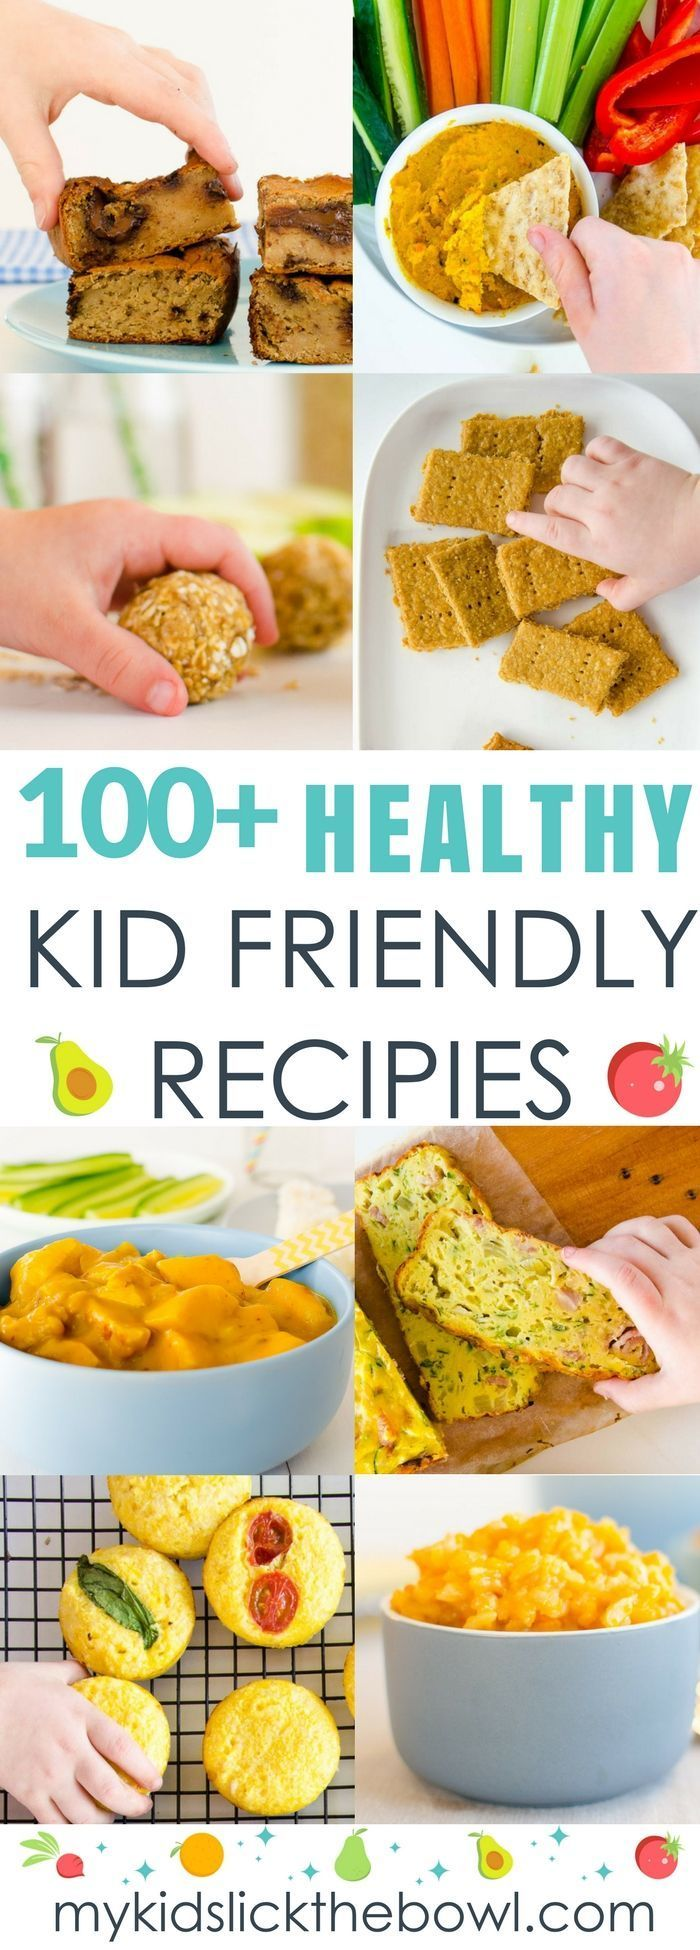 1558 best healthy kid friendly recipes images on pinterest baby 100 kid friendly recipes forumfinder Images